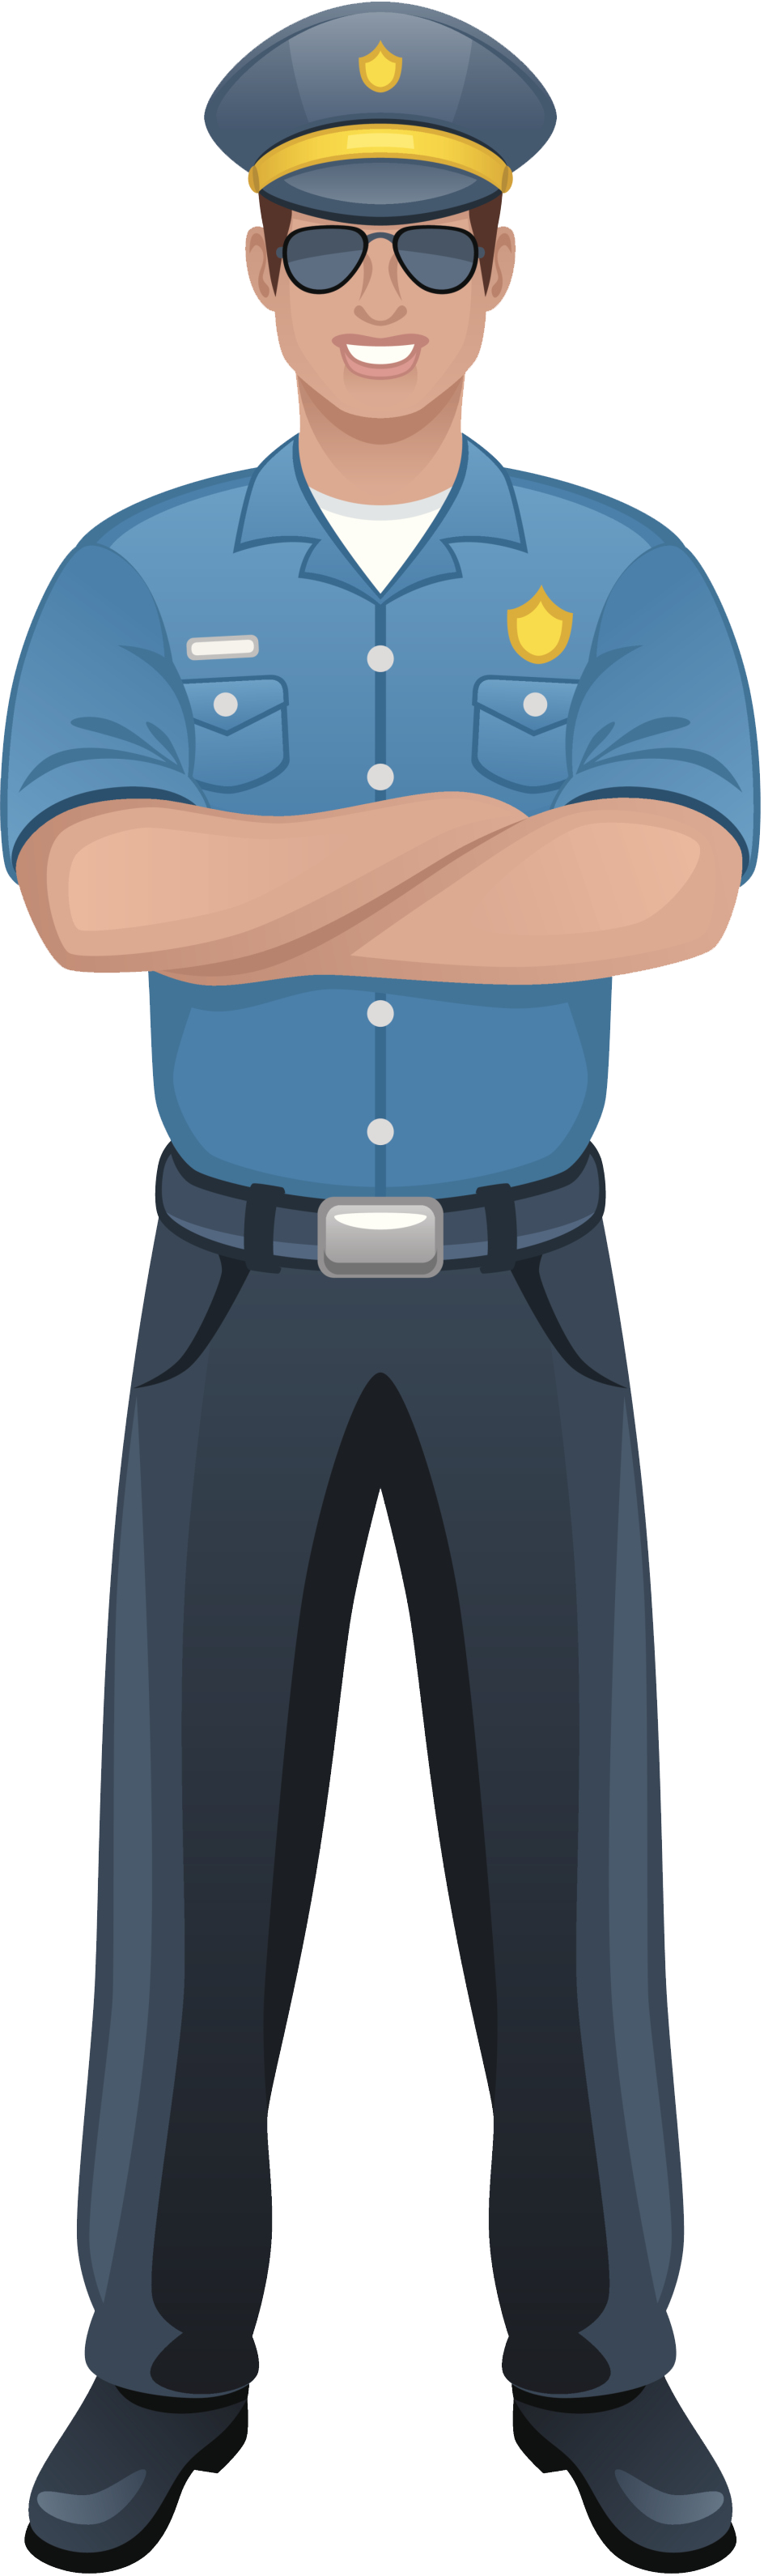 Free Police Cliparts, Download Free Clip Art, Free Clip Art.